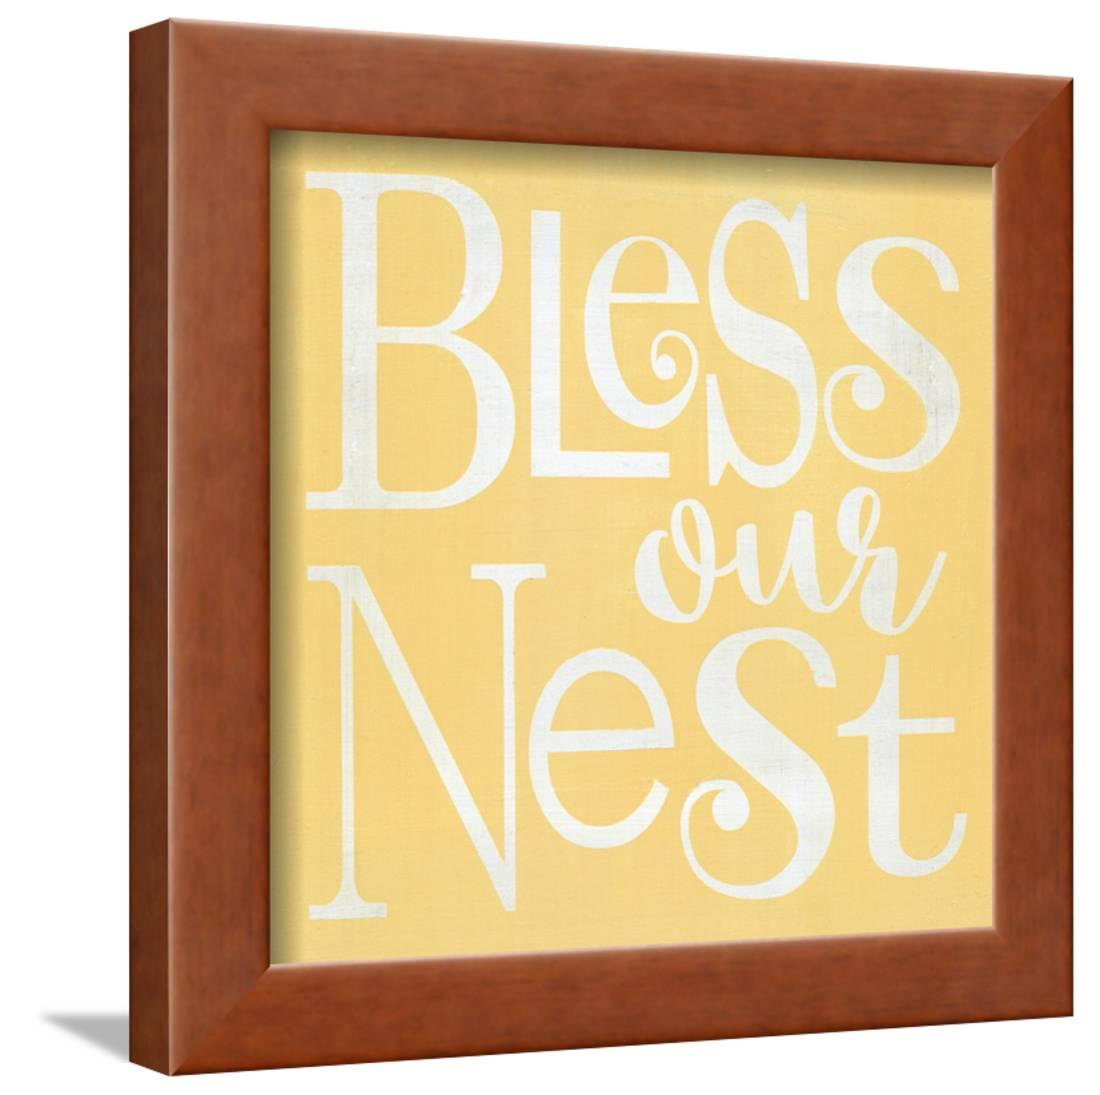 Bless Our Nest Yellow Framed Print Wall Art By Alli Rogosich ...